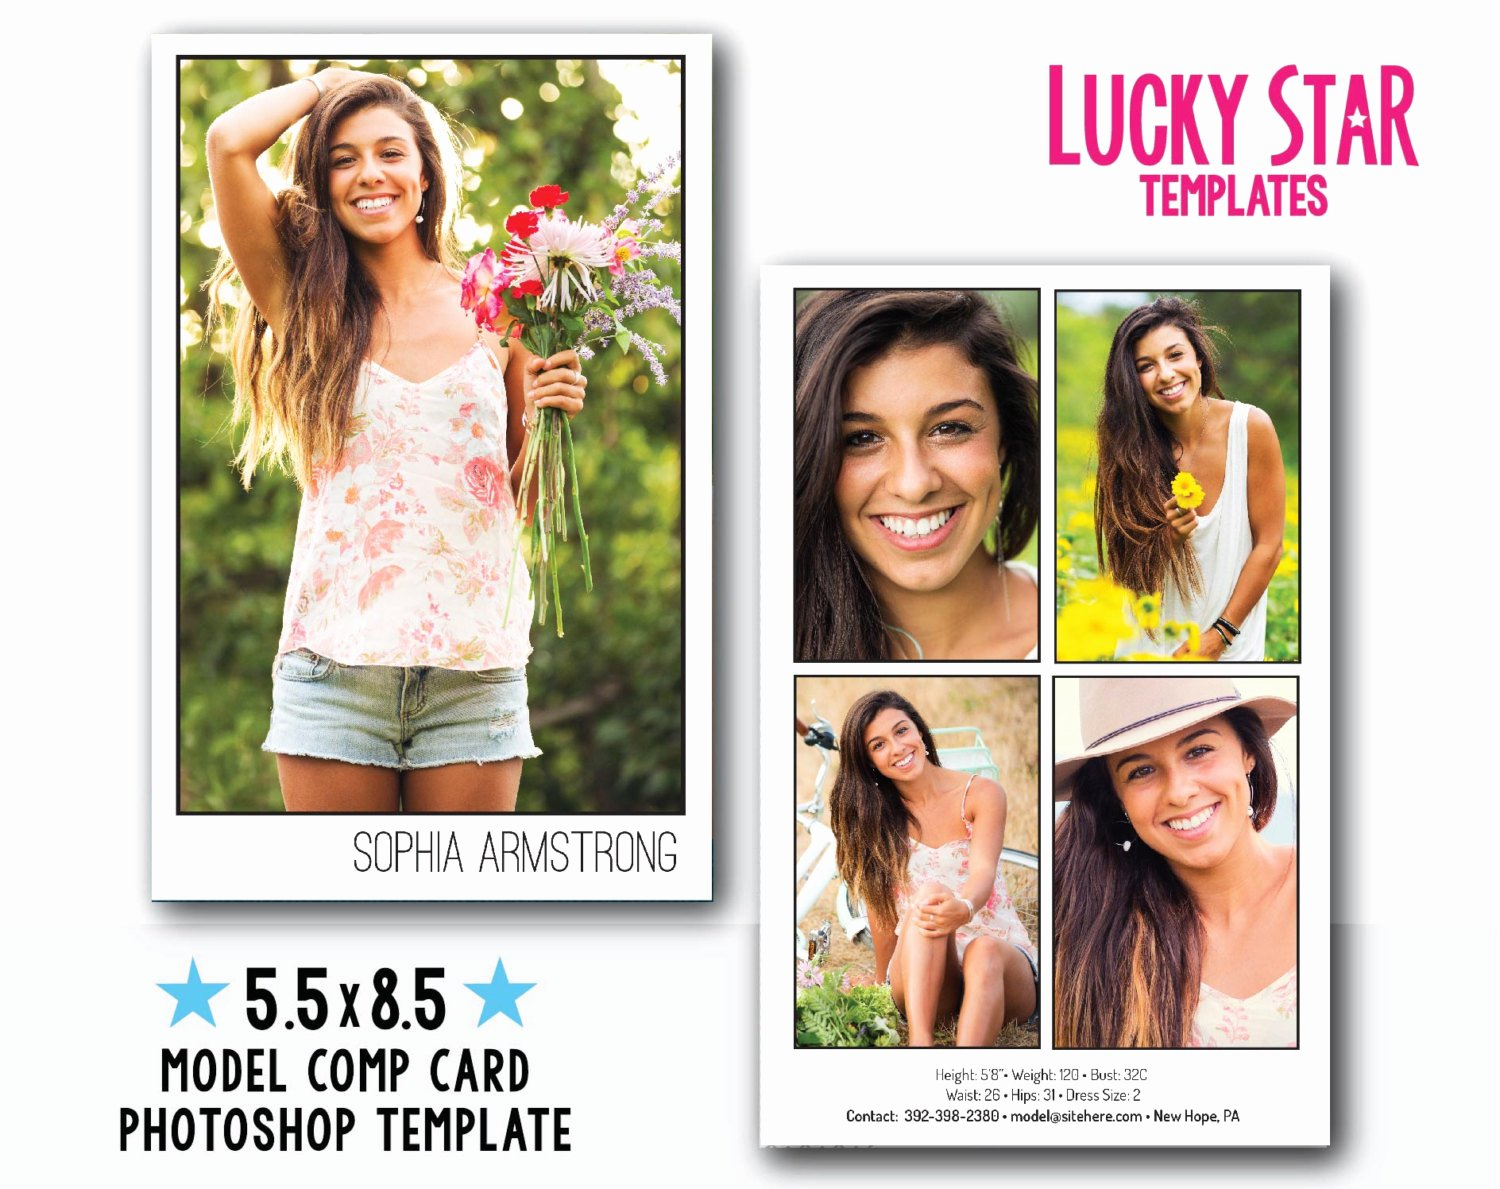 Model Comp Card Template Elegant Customizable Digital Model P Card Power Portraits